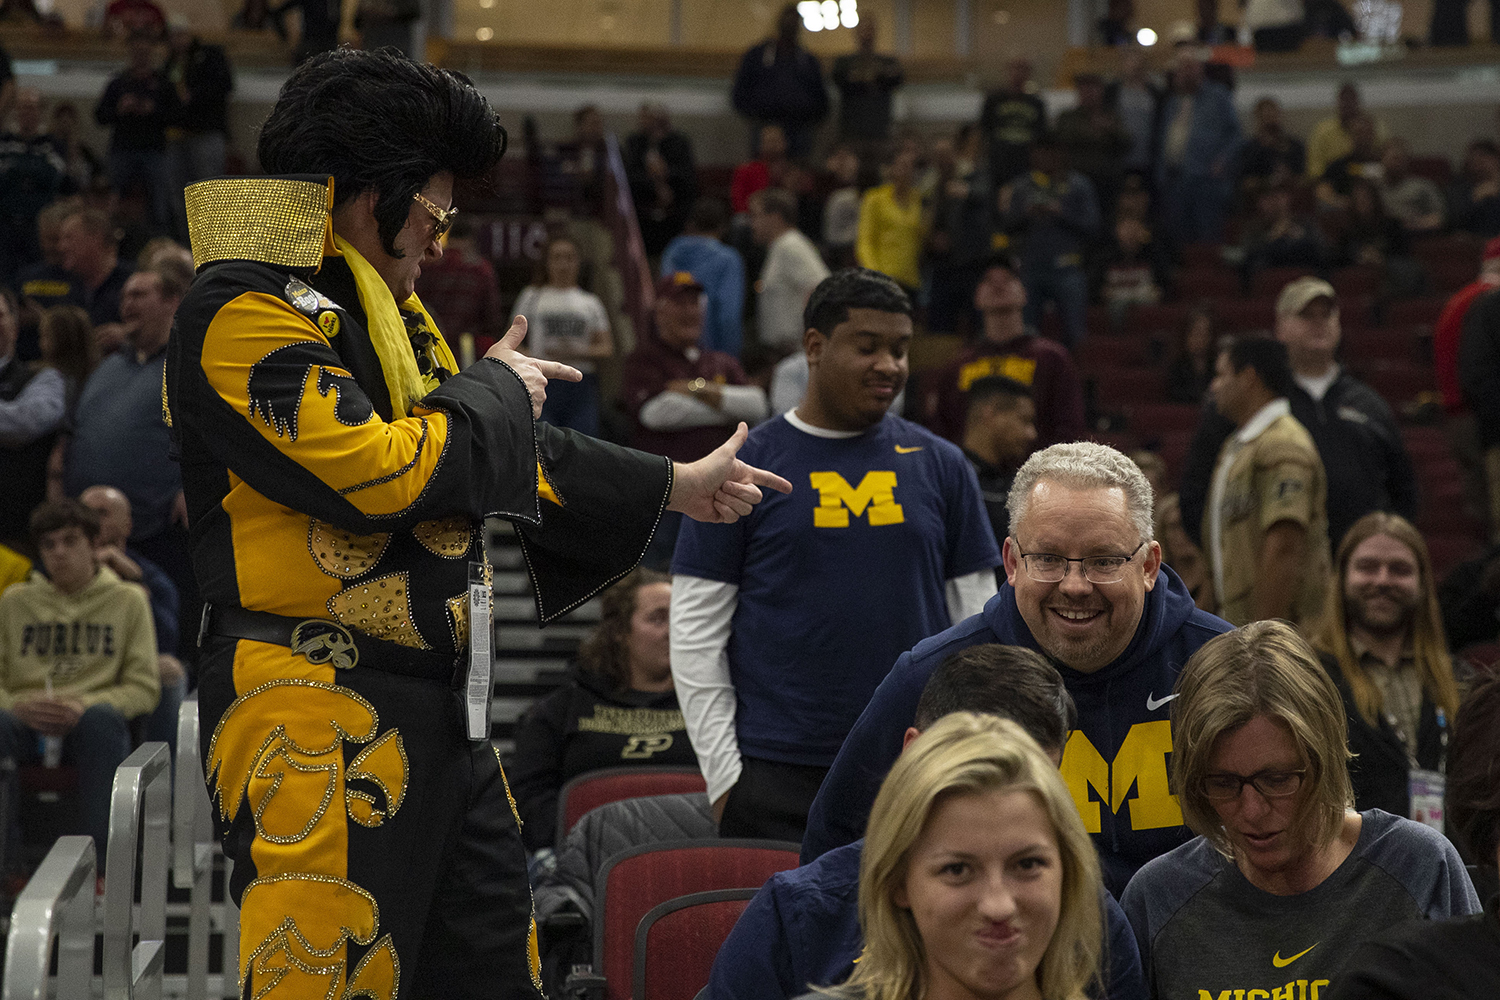 Hawkeye+Elvis+gestures+toward+a+Michigan+fan+during+the+Iowa%2FMichigan+Big+Ten+Tournament+men%27s+basketball+game+in+the+United+Center+in+Chicago+on+Friday%2C+March+15%2C+2019.+The+Wolverines+defeated+the+Hawkeyes%2C+74-53.+